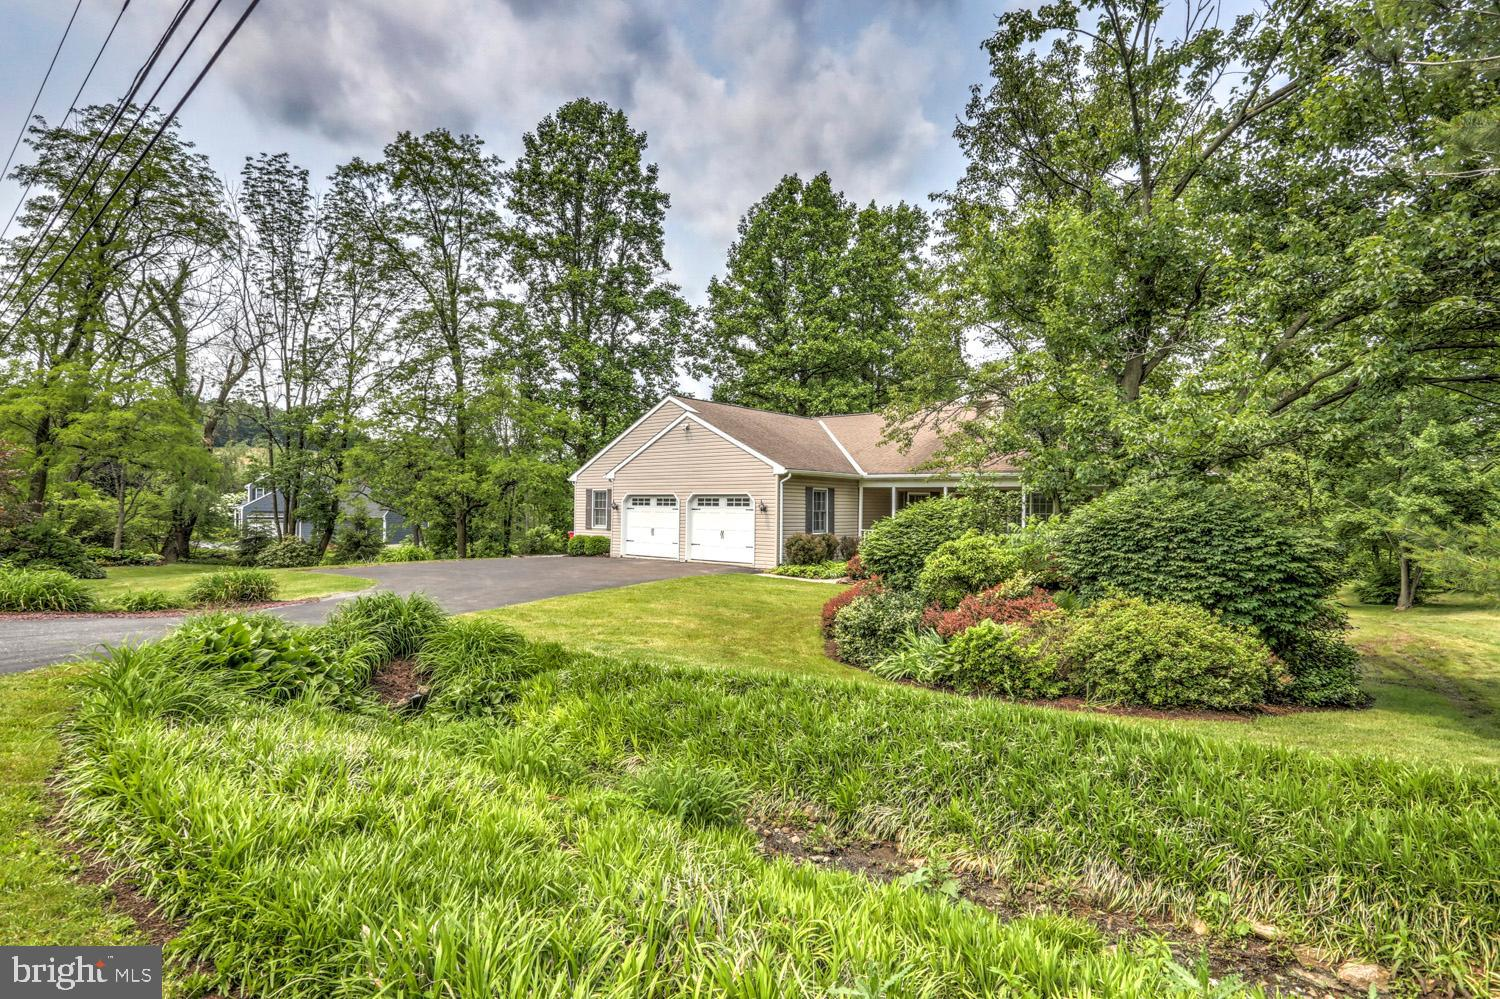 Residential for sale in WERNERSVILLE, Pennsylvania, PABK342544